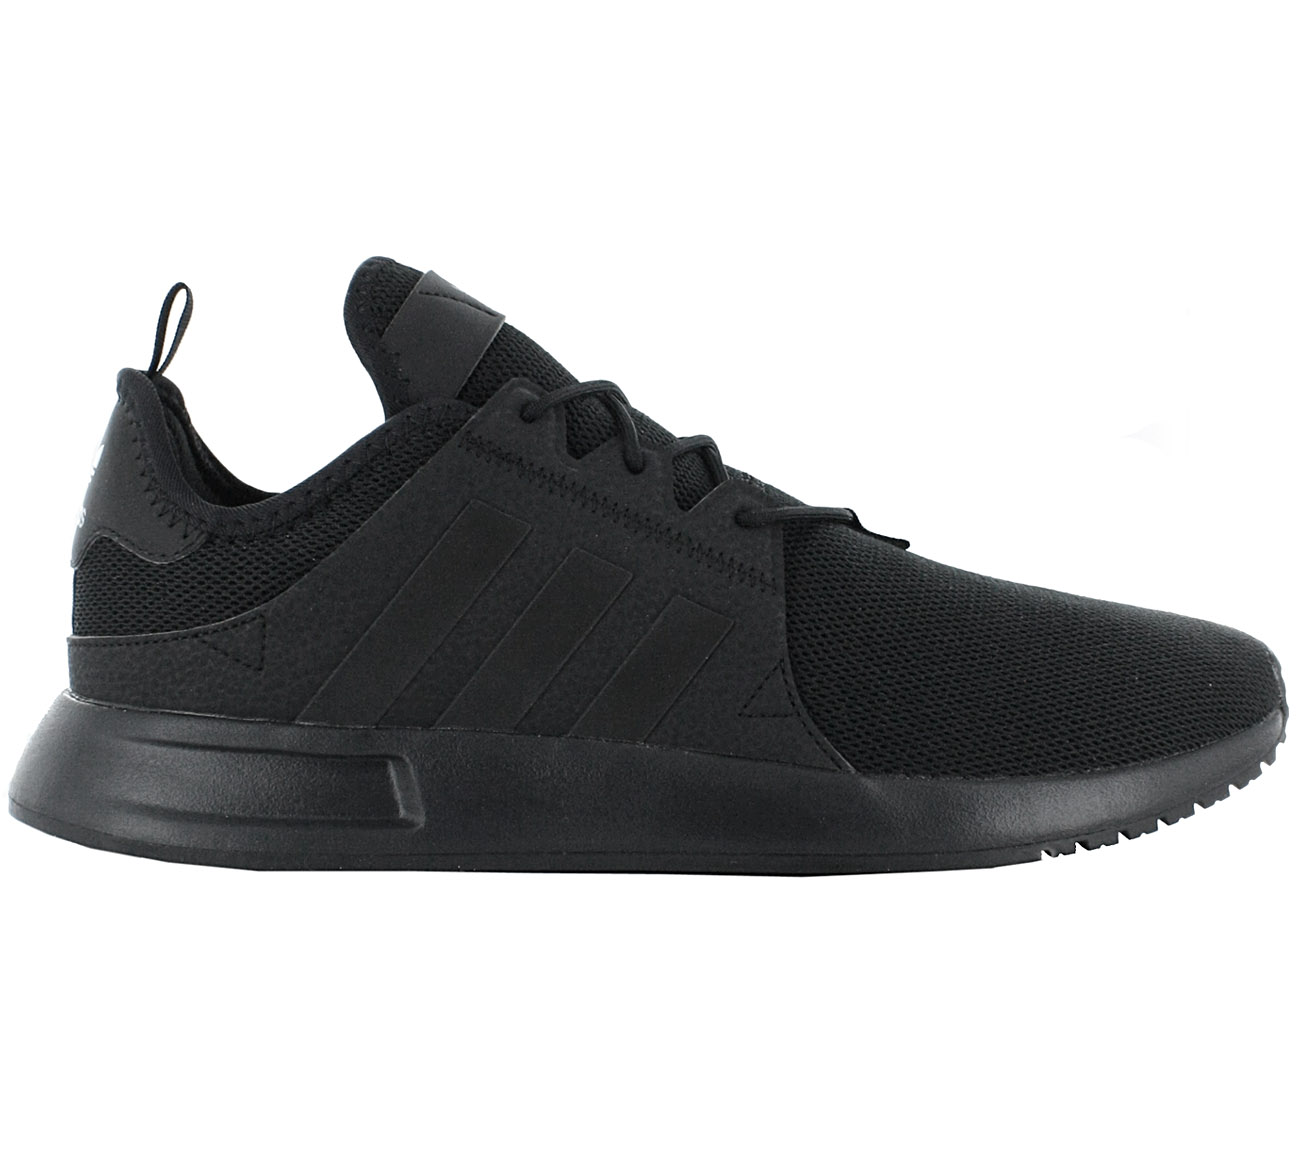 Adidas Originals Trainers Men's Lifestyle Shoes Casual Trainers x PLR NMD;  Picture 2 of 2